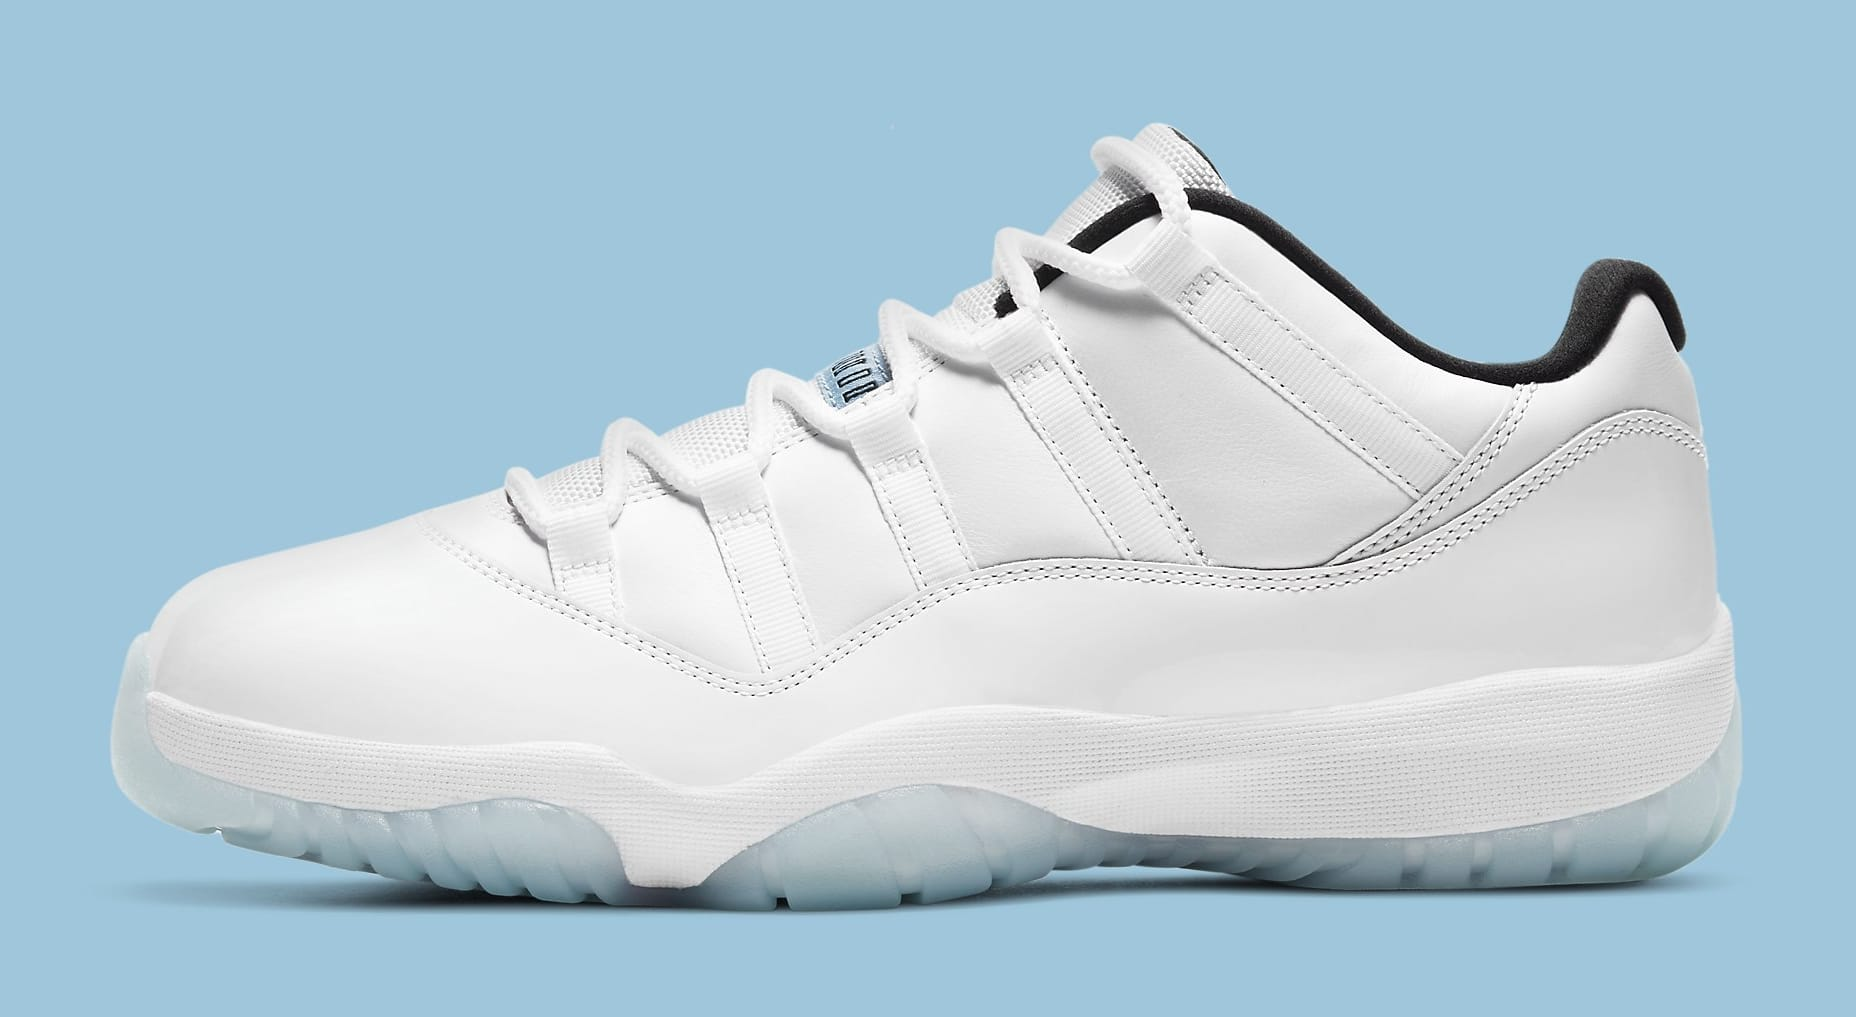 Air Jordan 11 XI Low Legend Blue Release Date AV2187-117 Profile